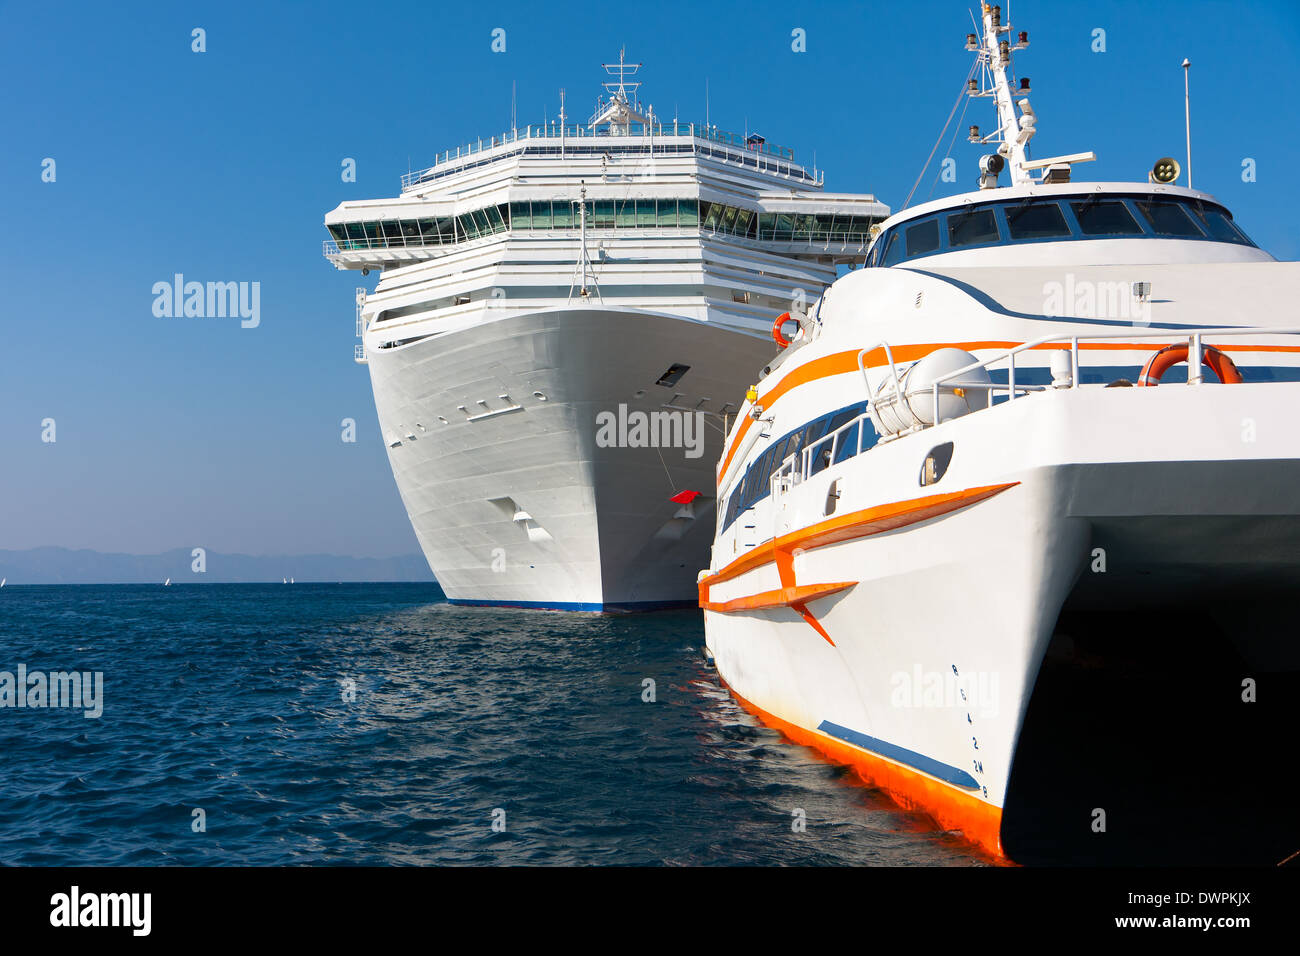 Tourist boats and passenger ships Stock Photo